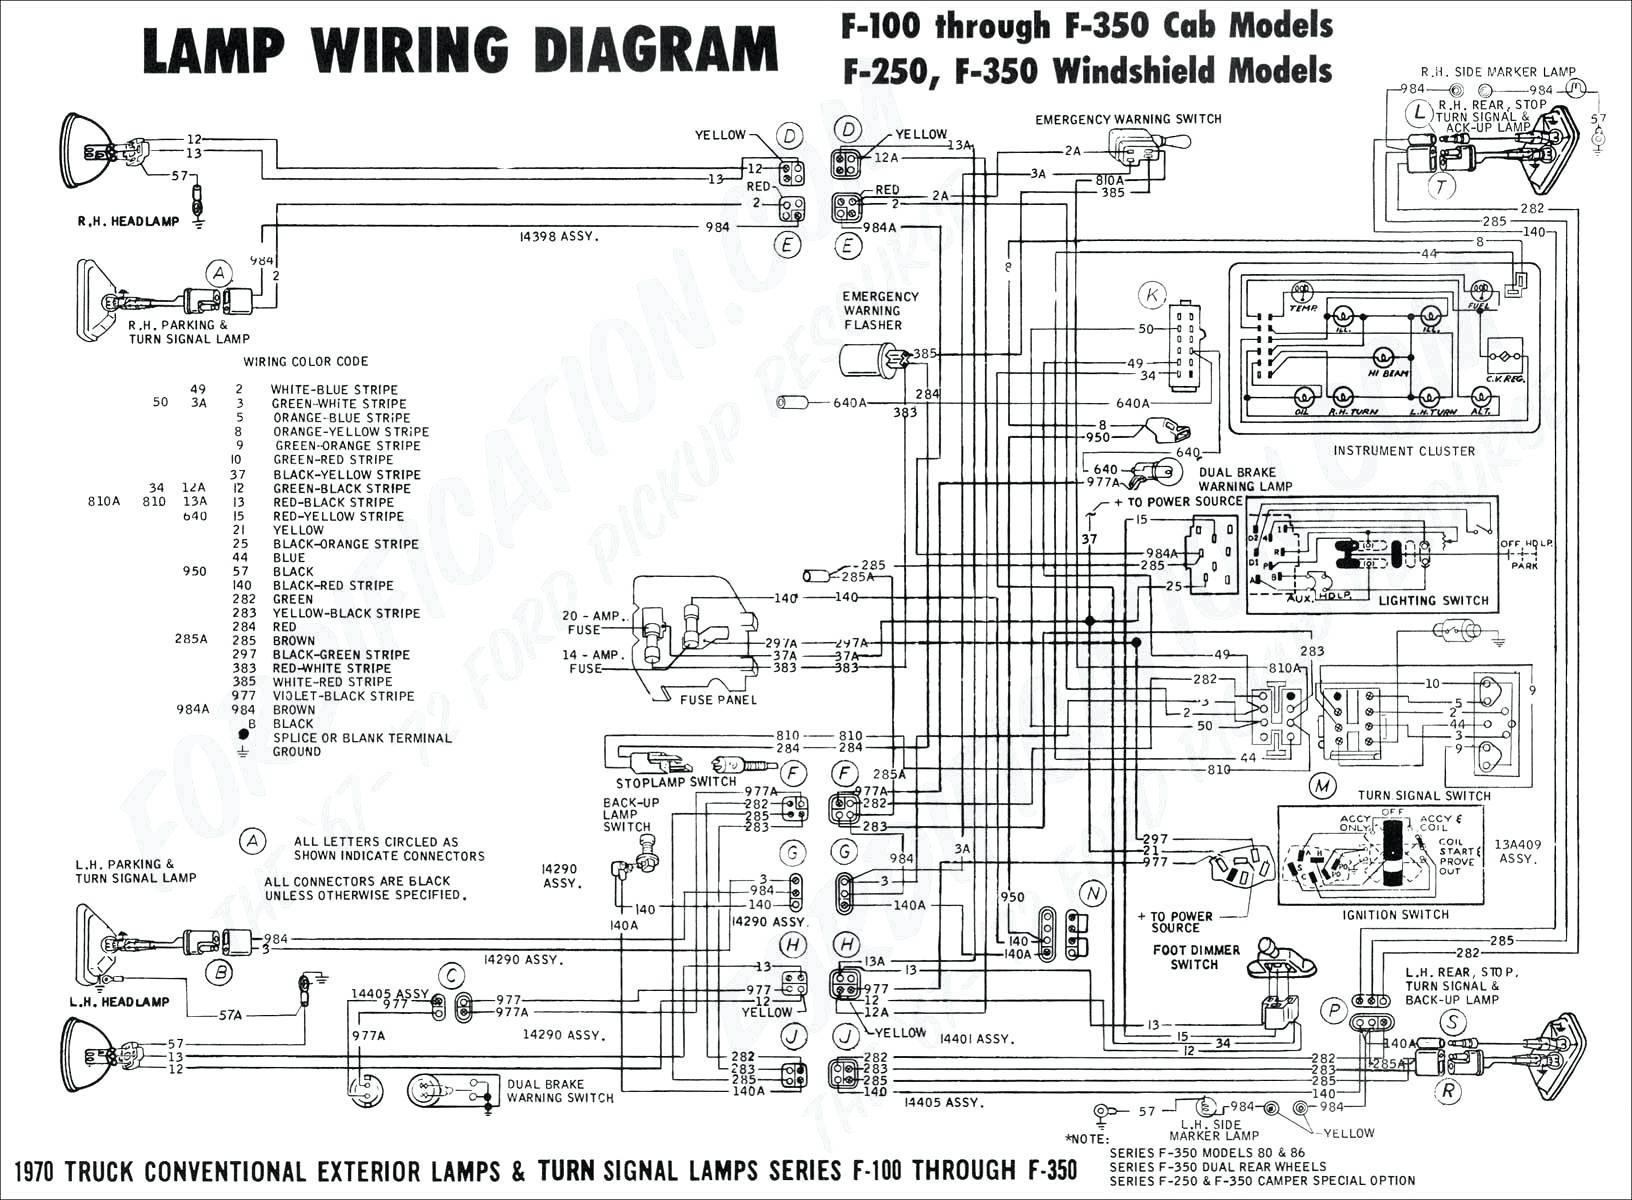 Bose Amp Wiring Diagram Manual